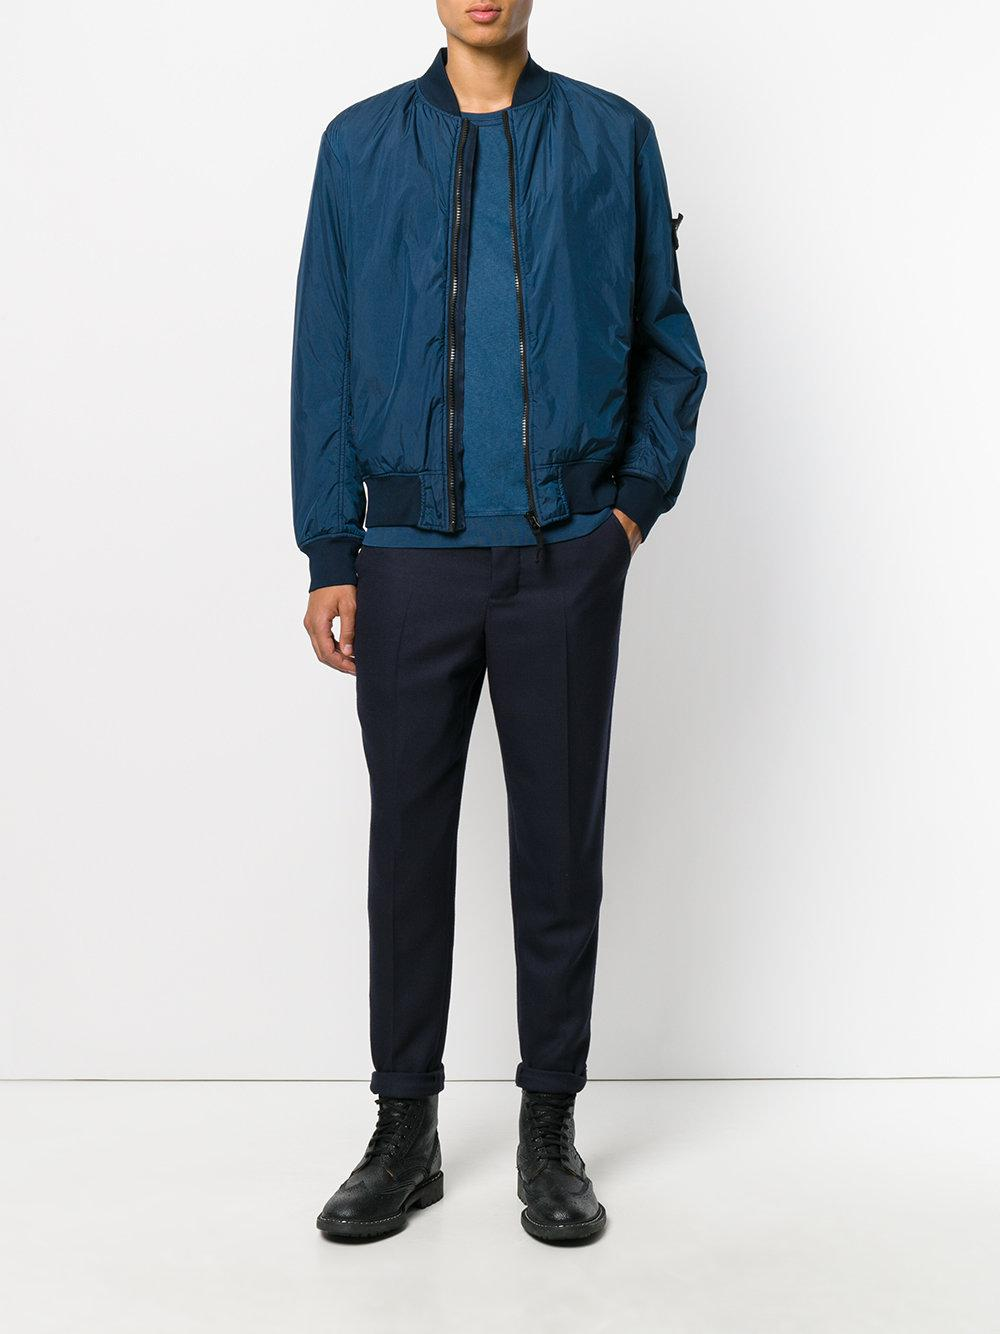 Stone Island Cotton Textured Bomber Jacket in Blue for Men